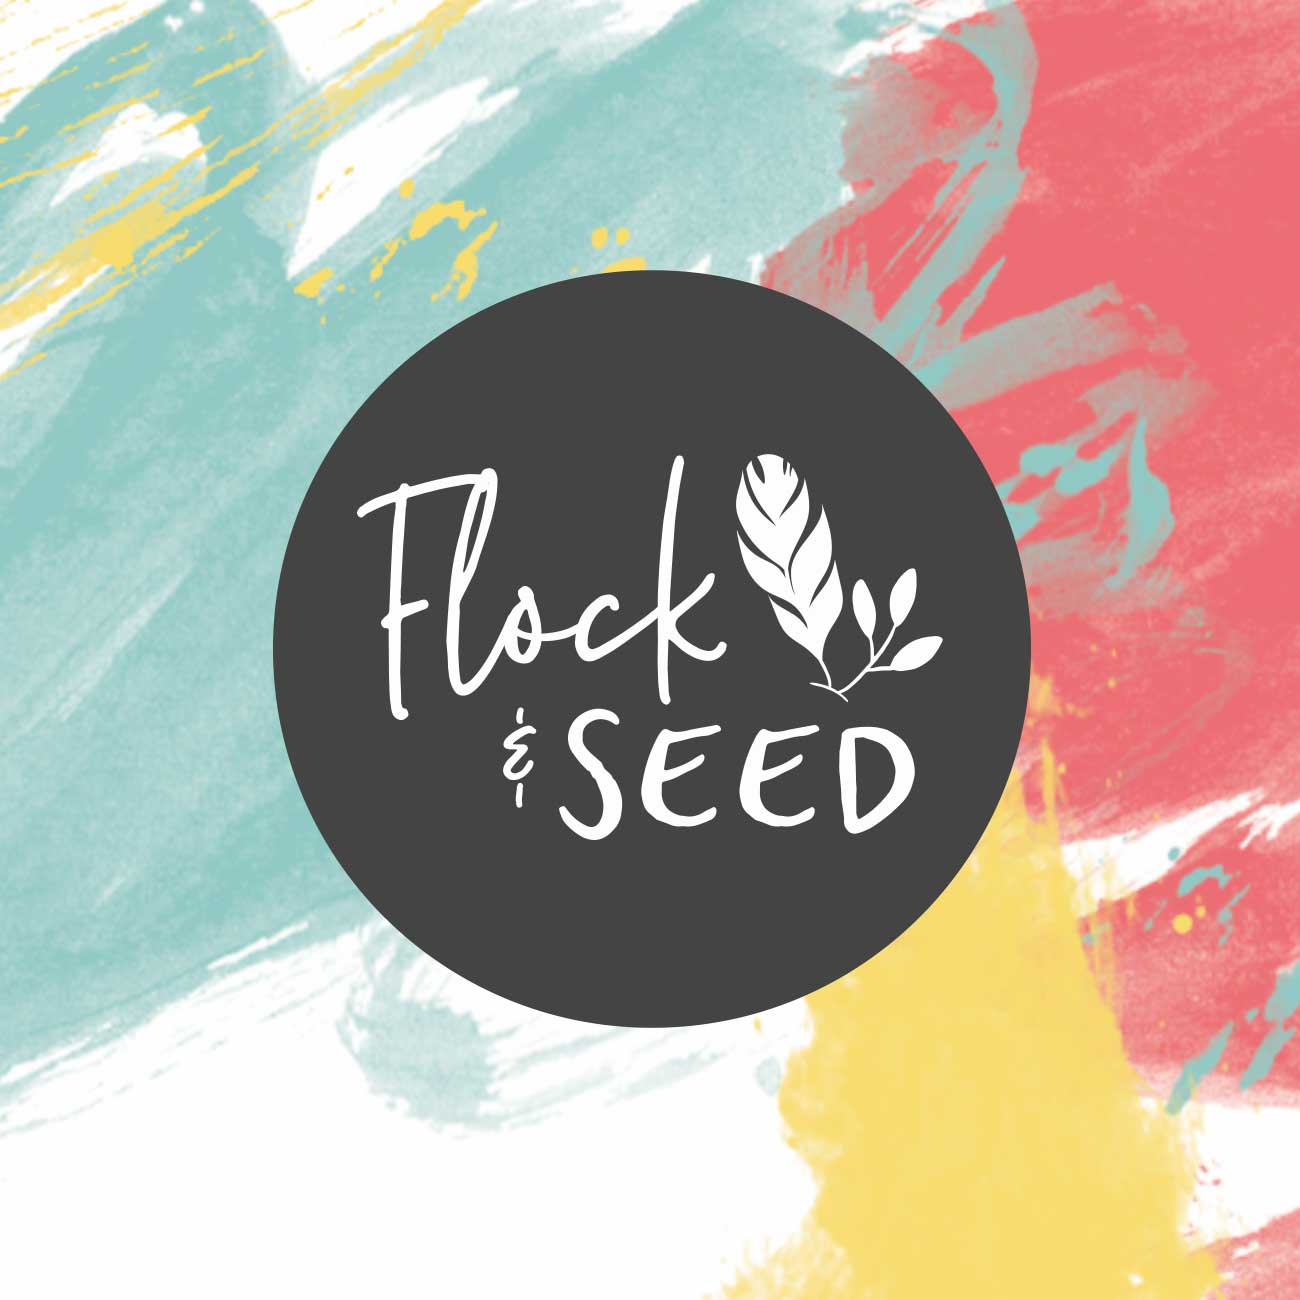 flock and seed logo design